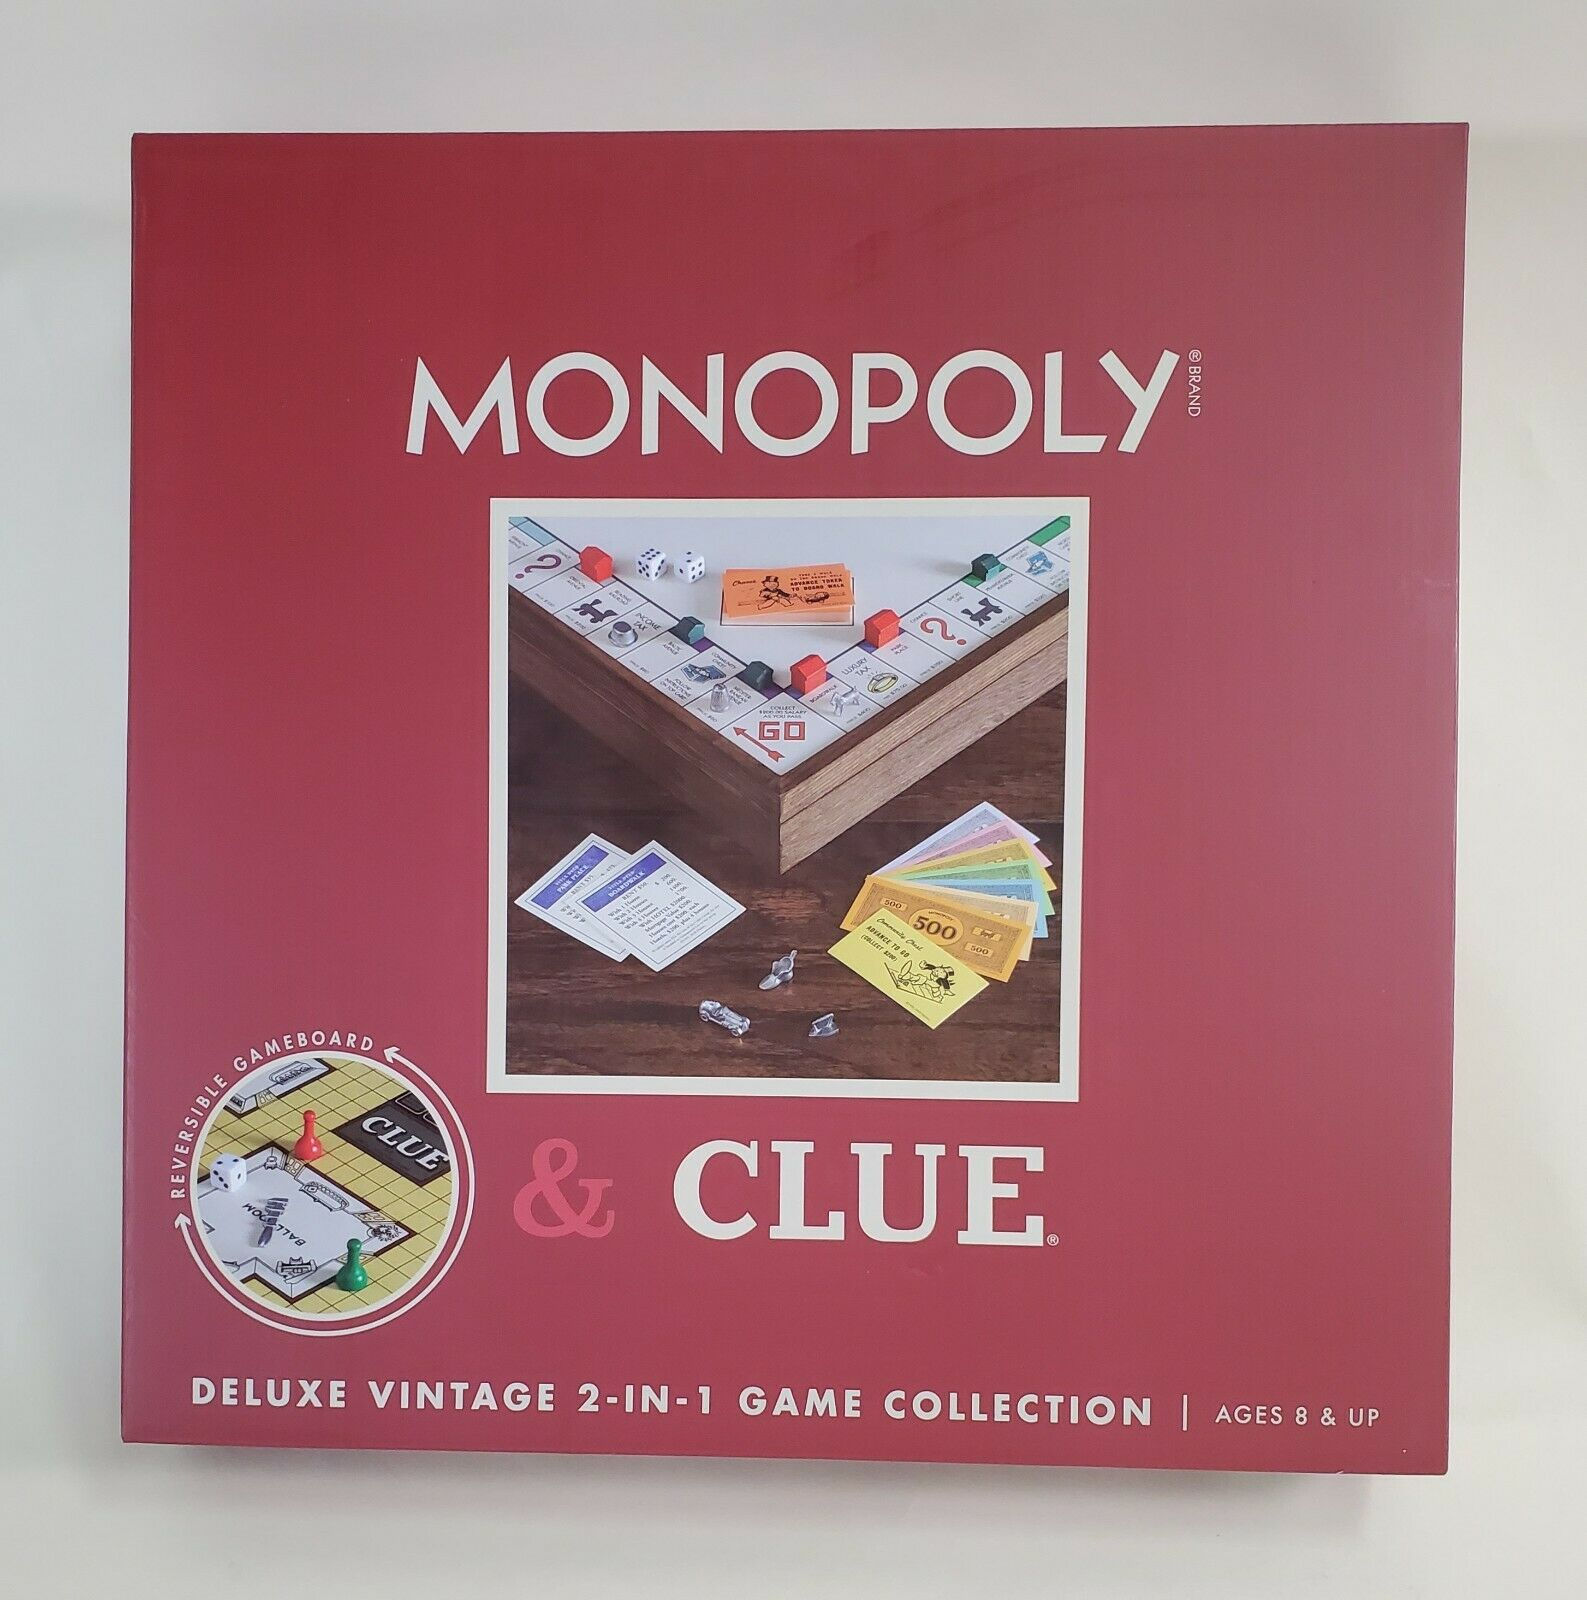 Monopoly and Clue 2 Games in 1 Deluxe Vintage Game Collection Set Wooden